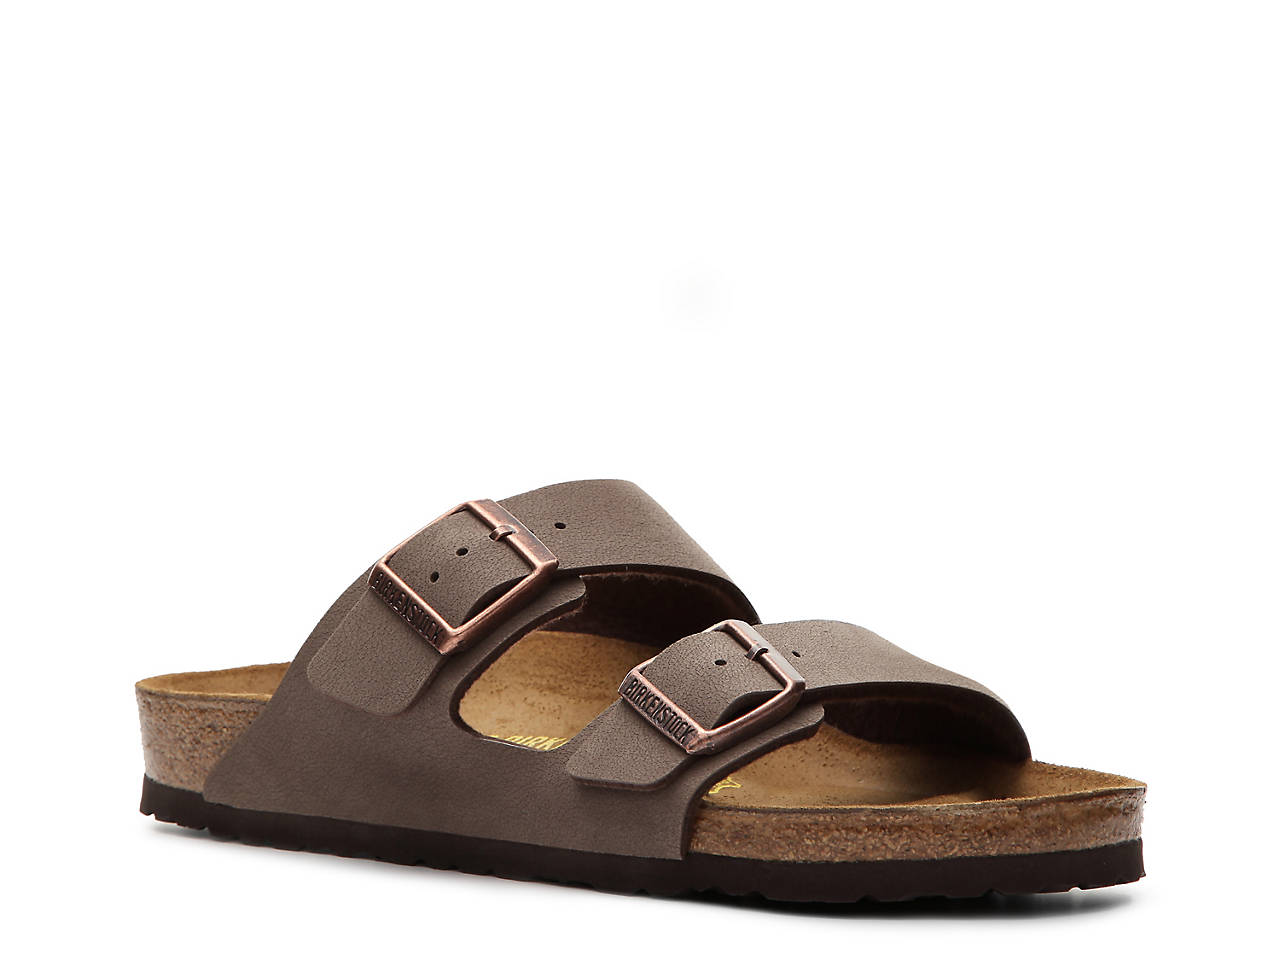 dc14e7583110 Birkenstock Arizona Birko-Flor Slide Sandal - Men s Men s Shoes